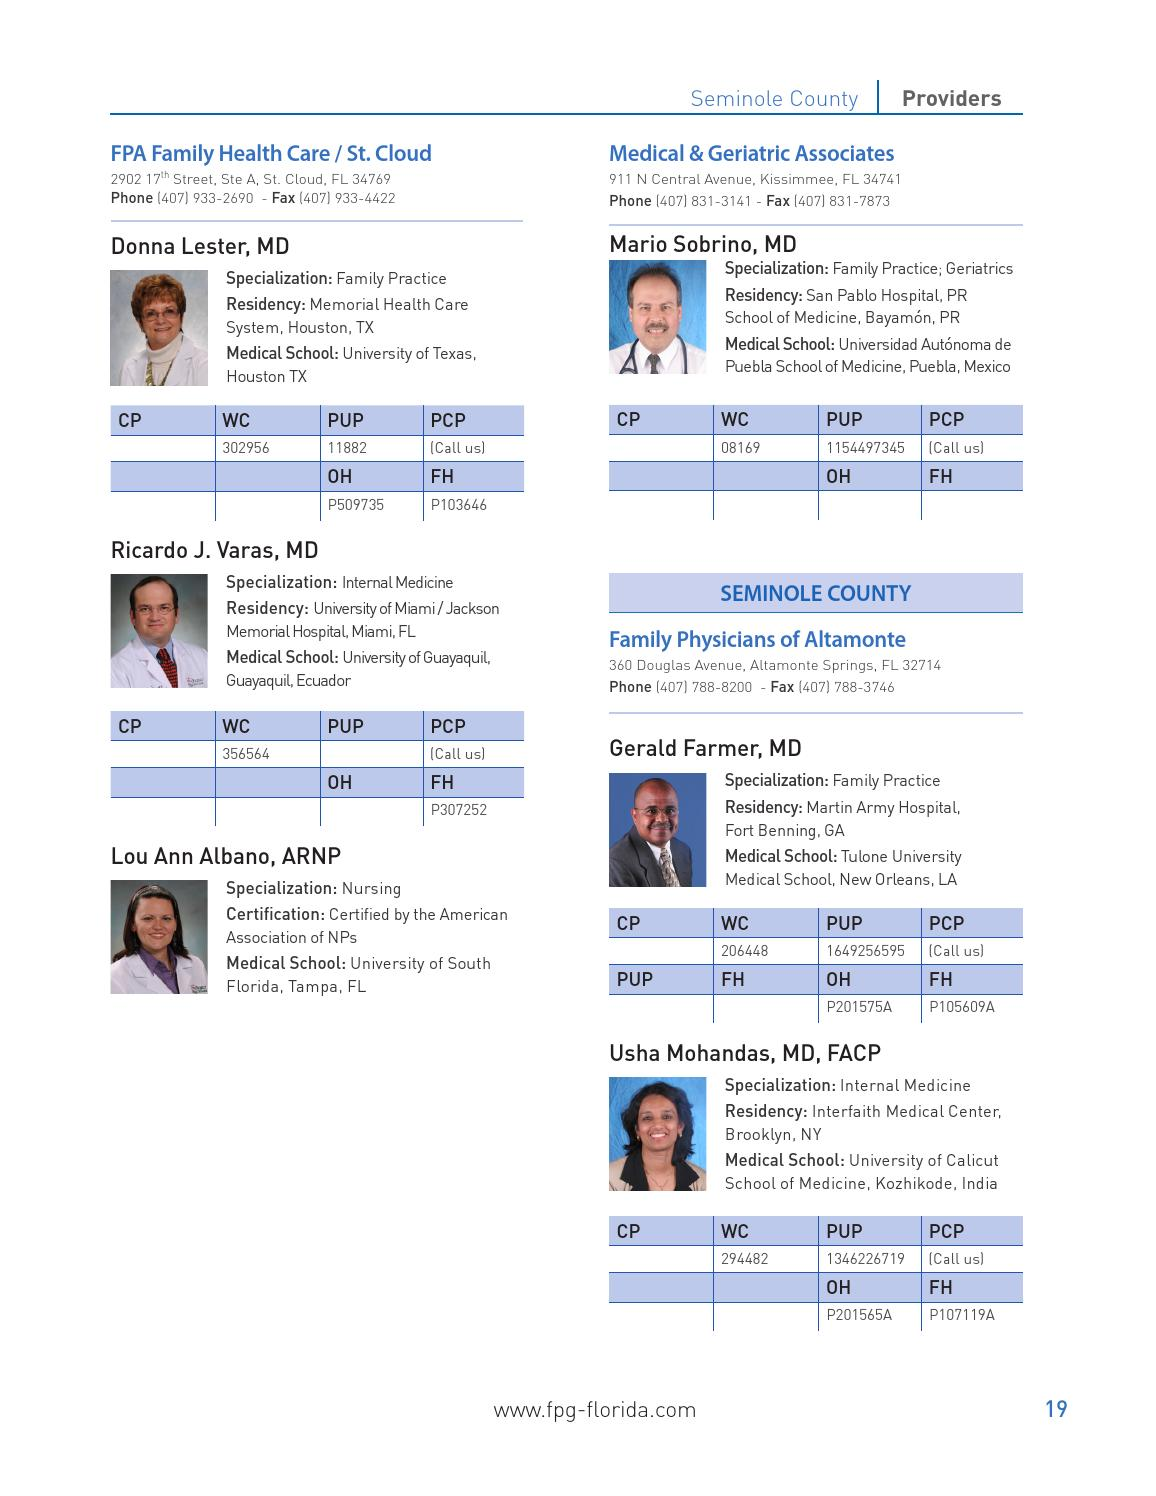 FPG Physicians Profiles by FPGFlorida - issuu